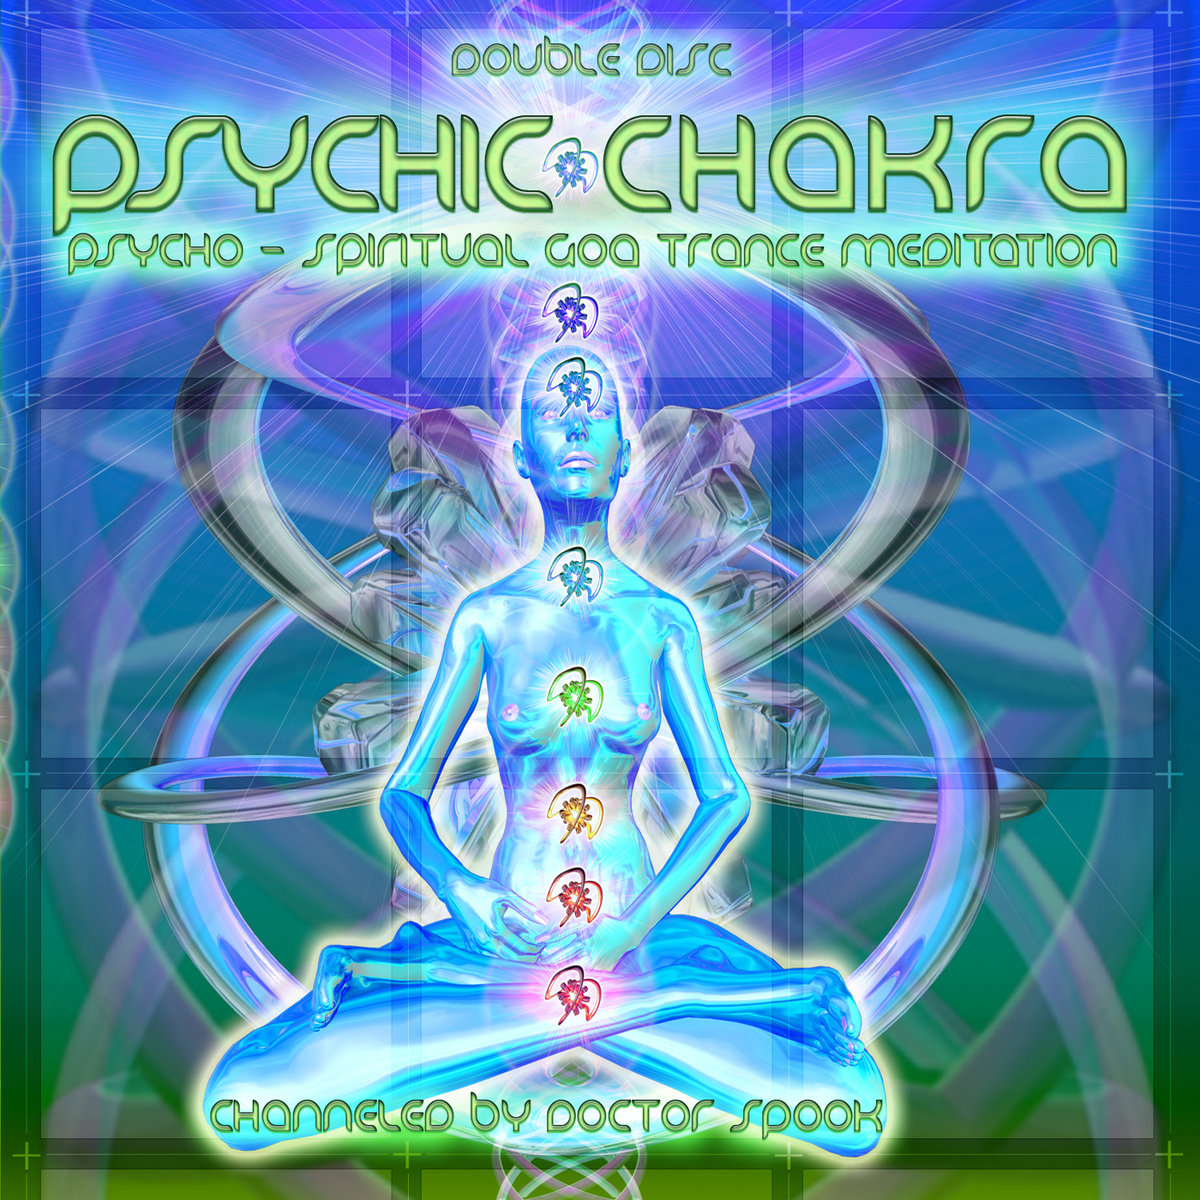 Sidhartha - The Rush @ 'Various Artists - Psychic Chakra (Channeled by Dr. Spook)' album (electronic, psychic chakra)